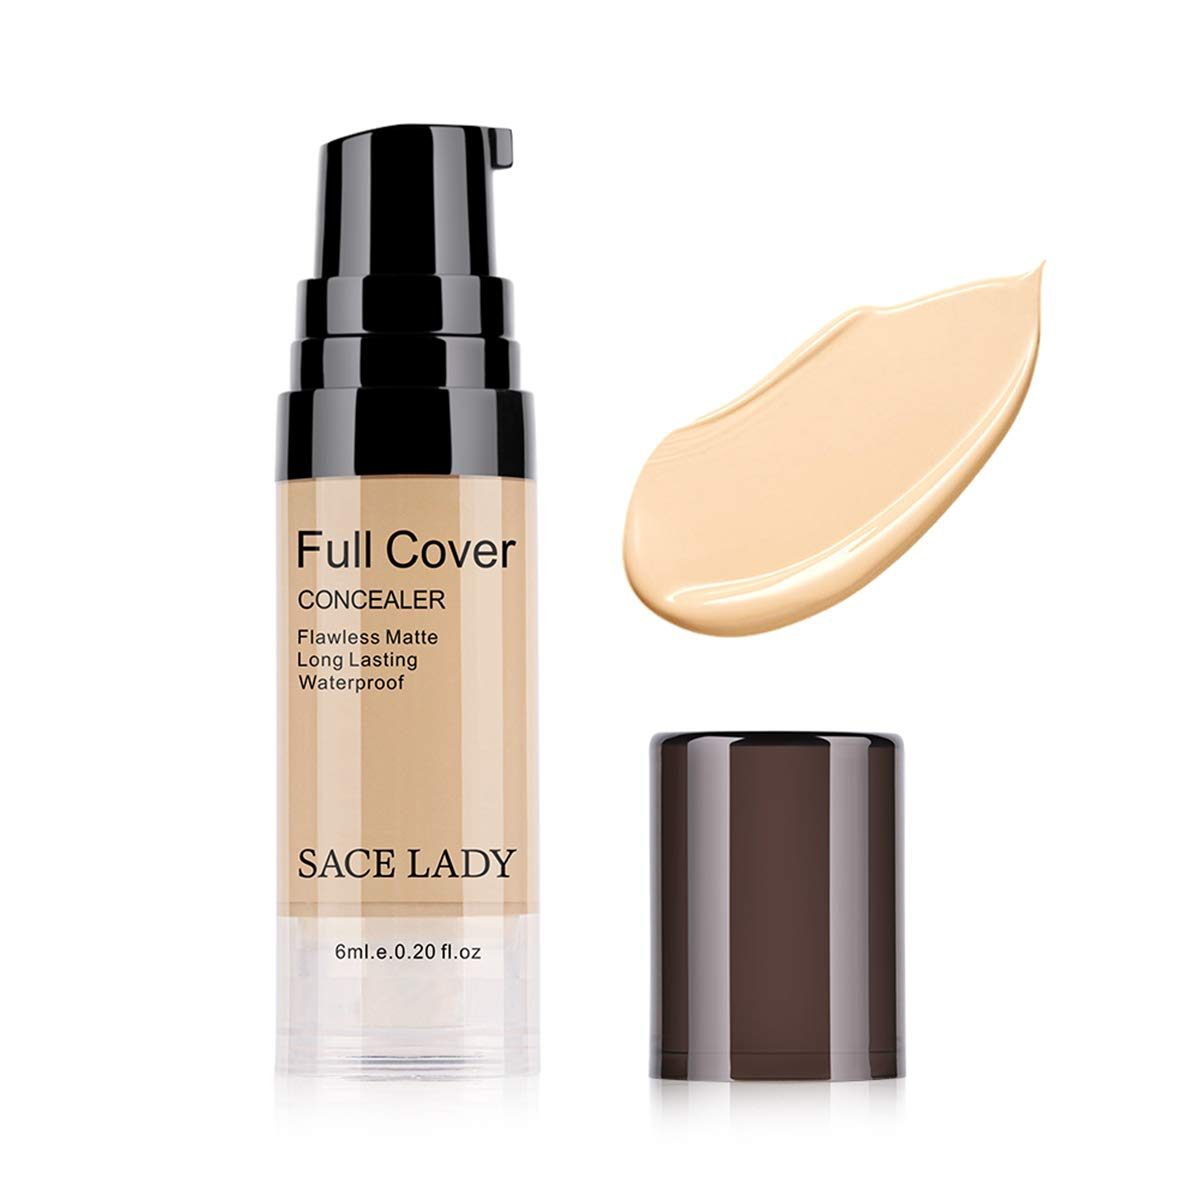 Sace Lady Full Cover Concealer